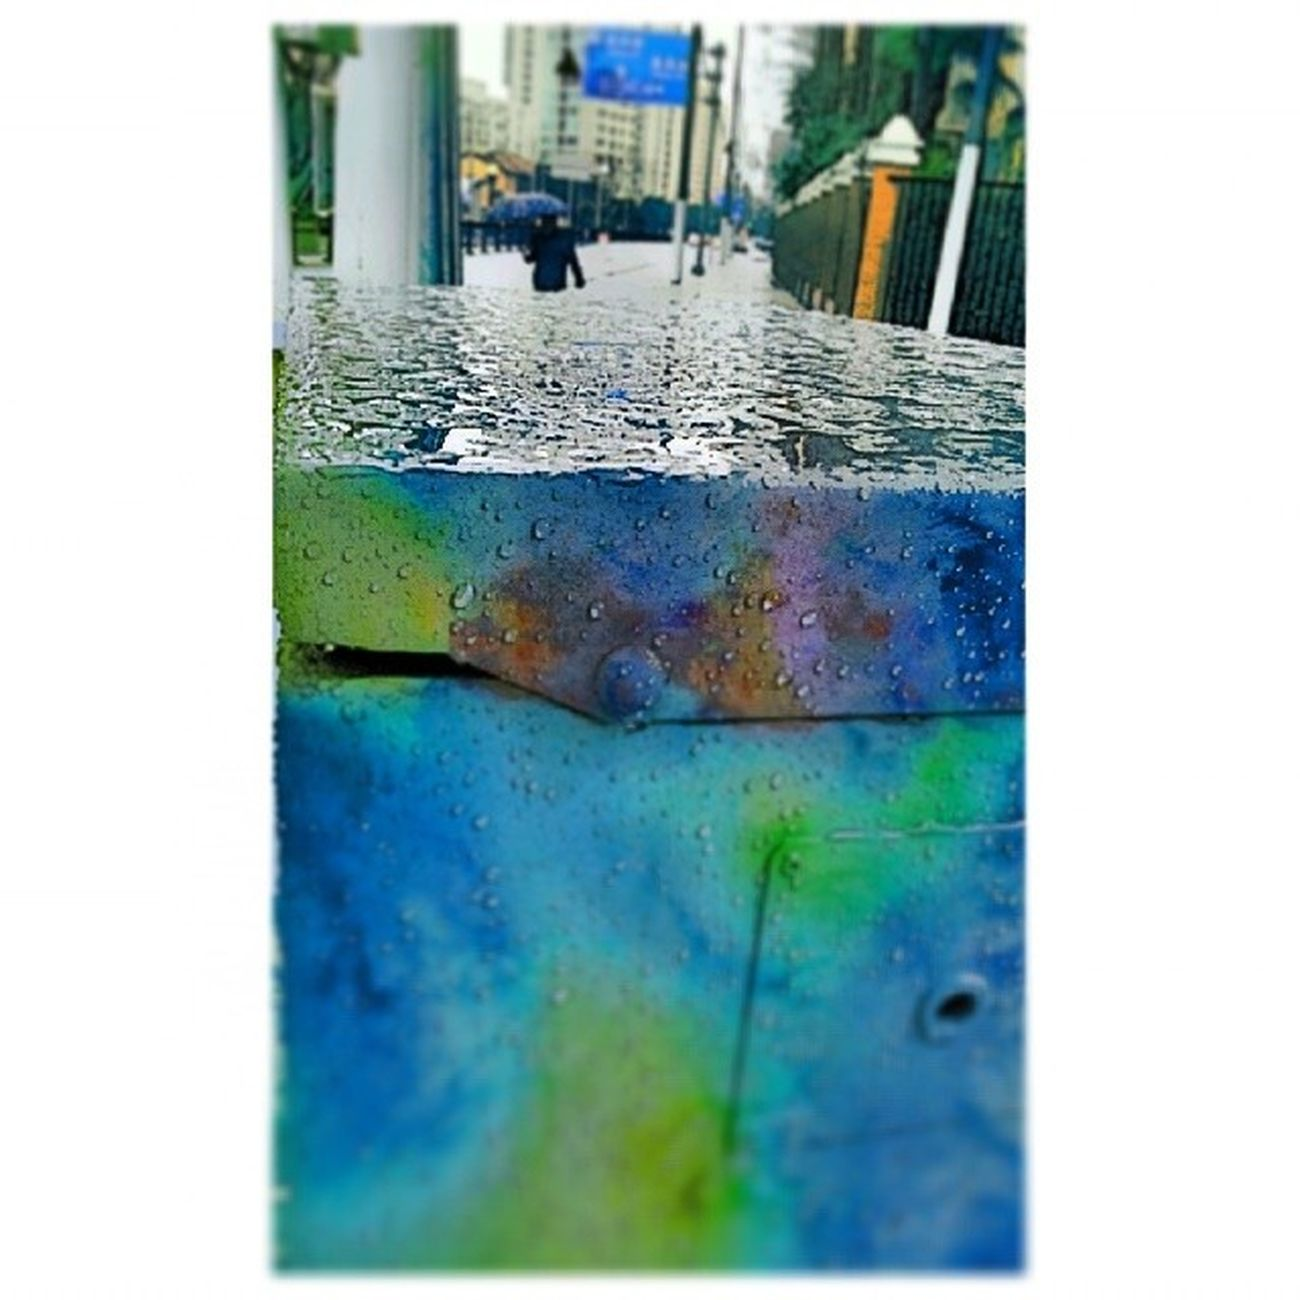 Watercolor Reduction Streetlevel StreetScenes Rainy Water